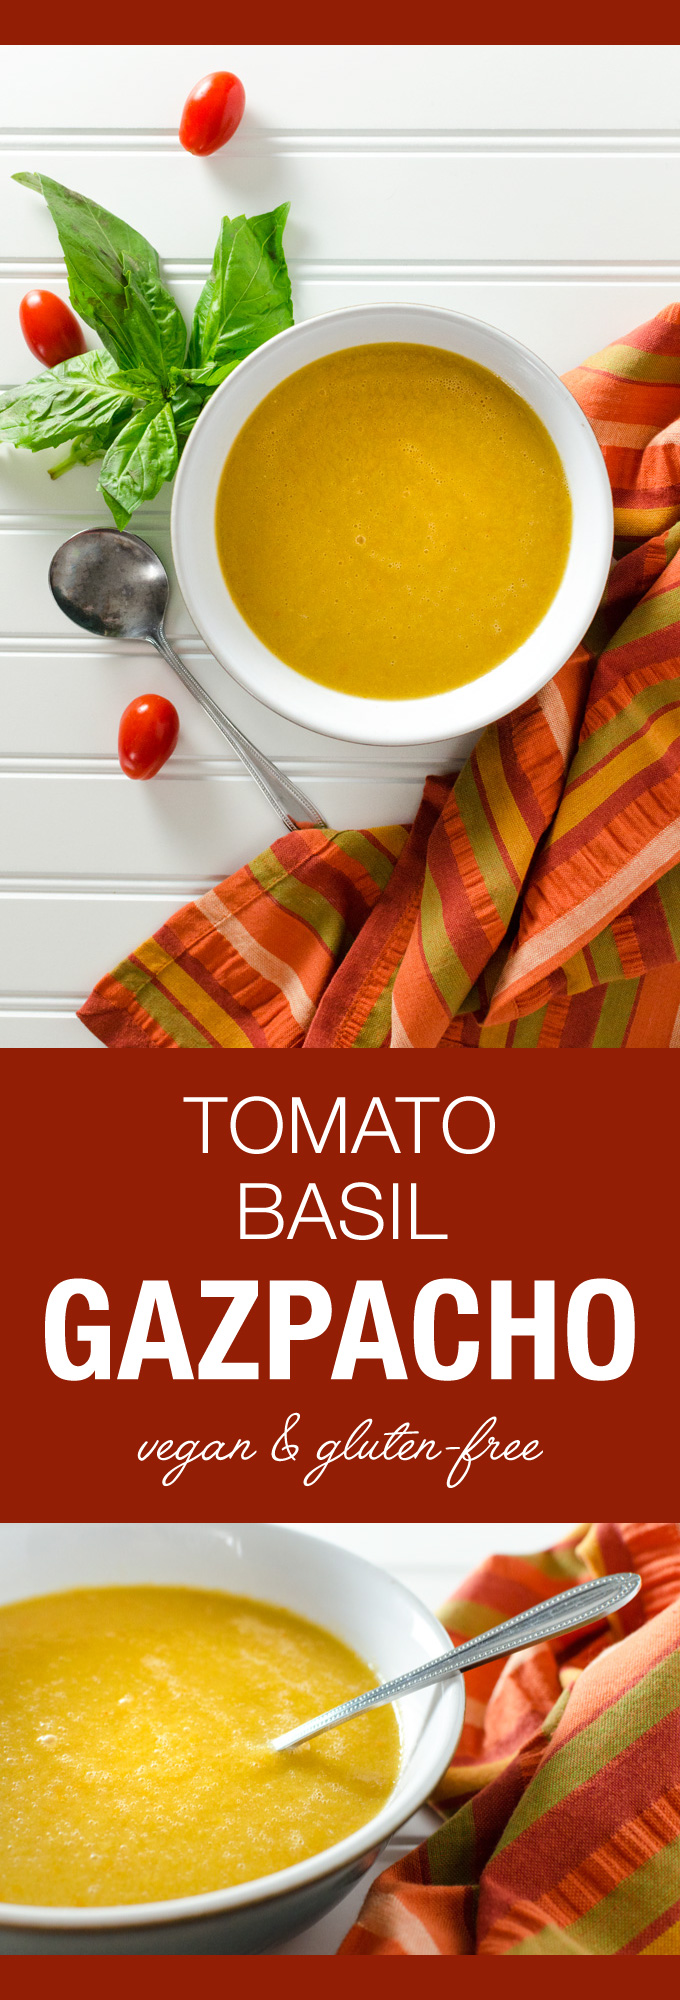 Simple Tomato Basil Gazpacho - an easy raw vegan gluten-free cold soup recipe you can mix up in your high-speed blender | VeggiePrimer.com